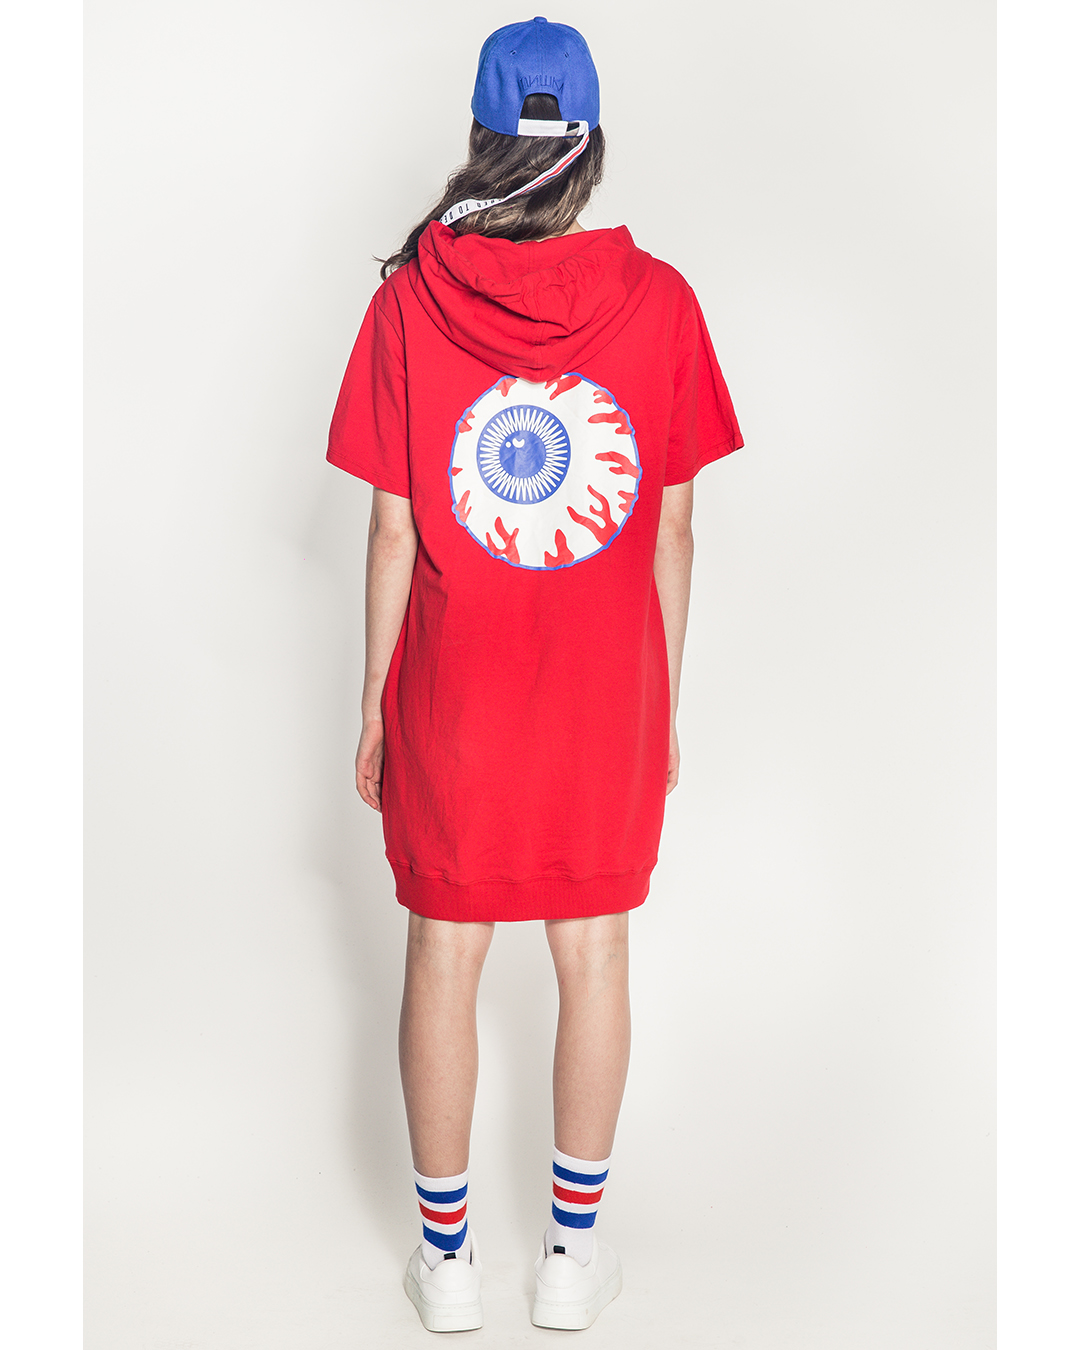 Cyrillic Legacy Girl's Hoody Dress (Red)